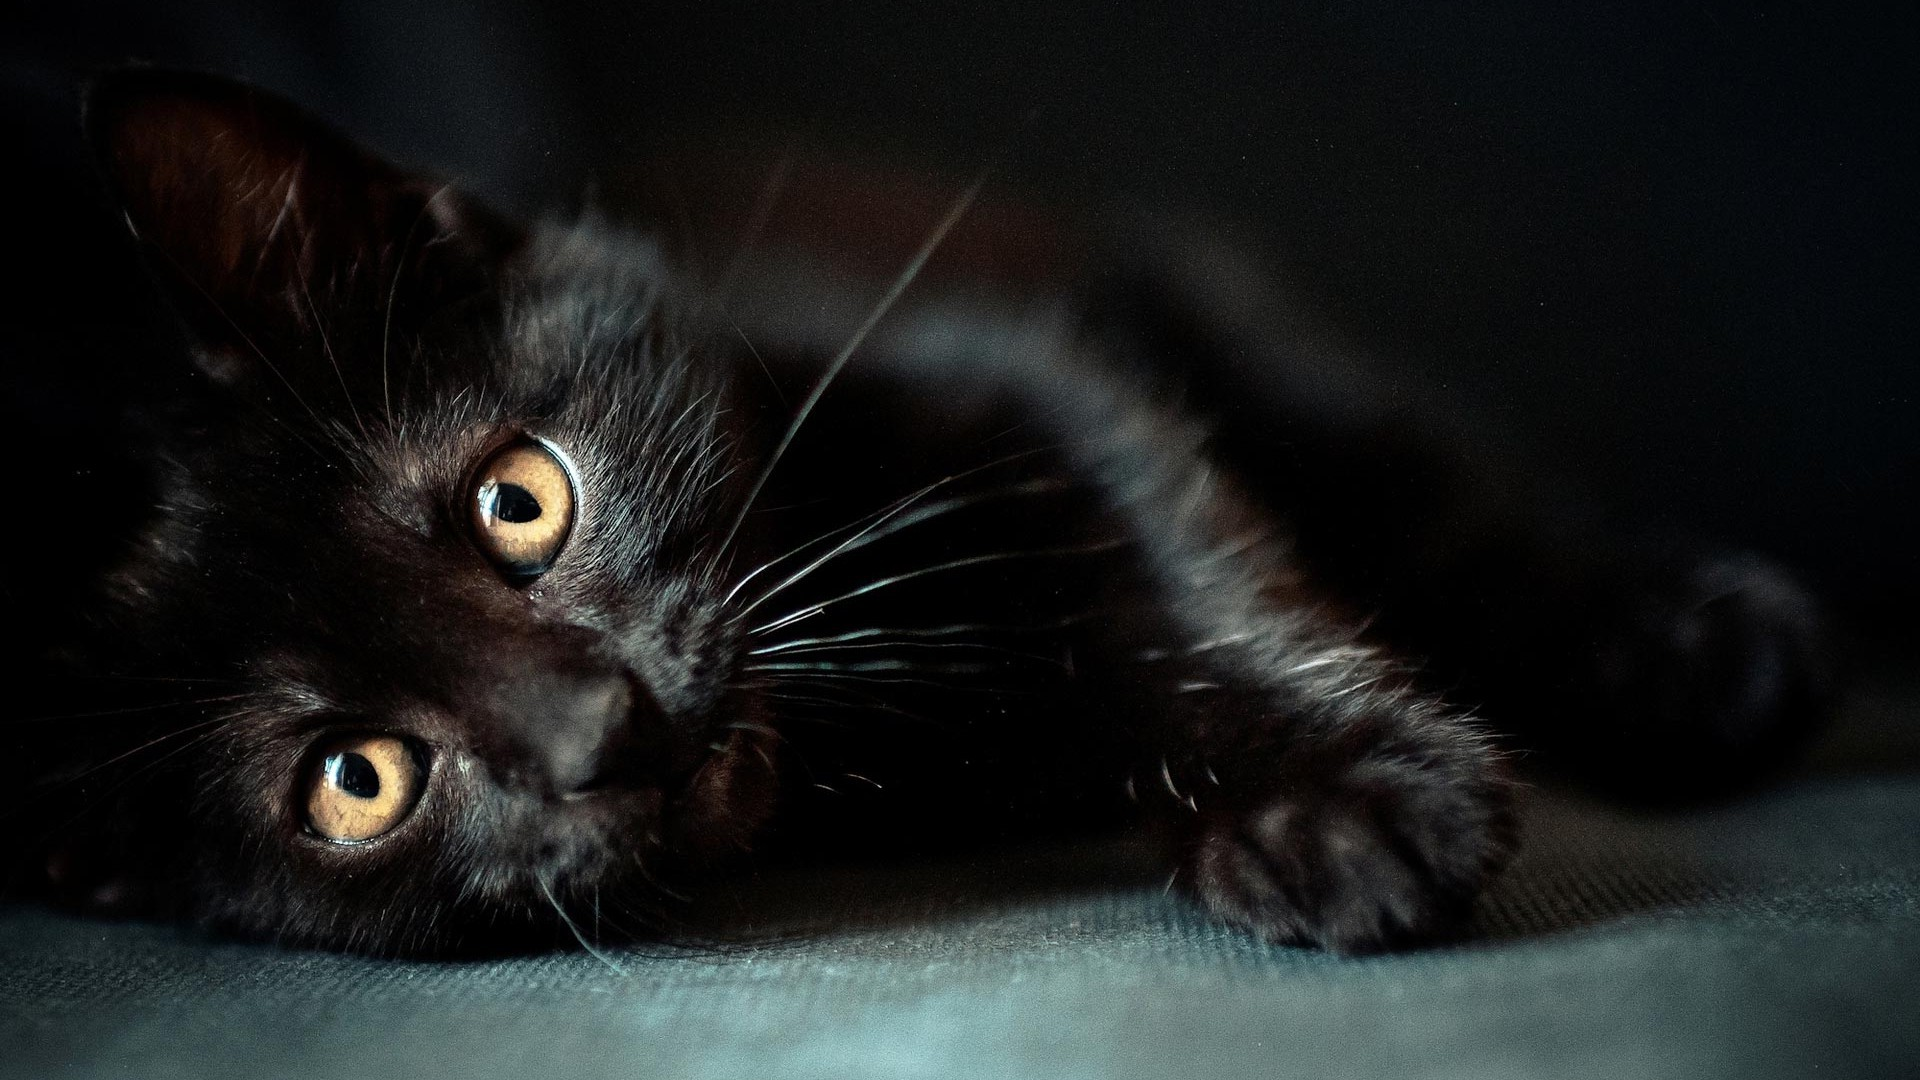 Cute Black Cat Wallpaper 2021 Cute Wallpapers 1920x1080